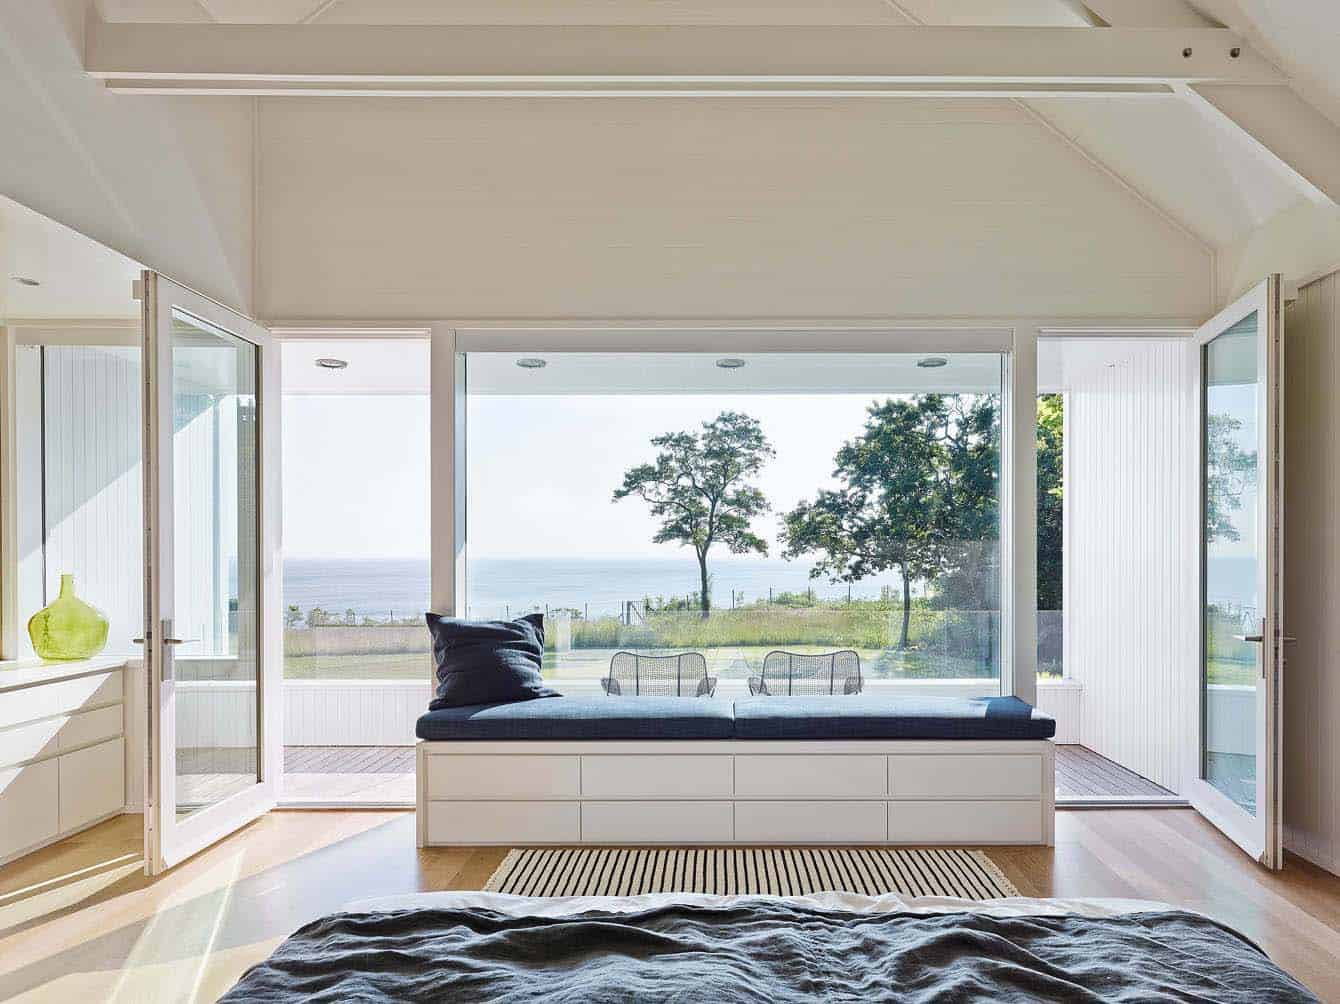 Waters Edge House-Robert Young Architects-15-1 Kindesign